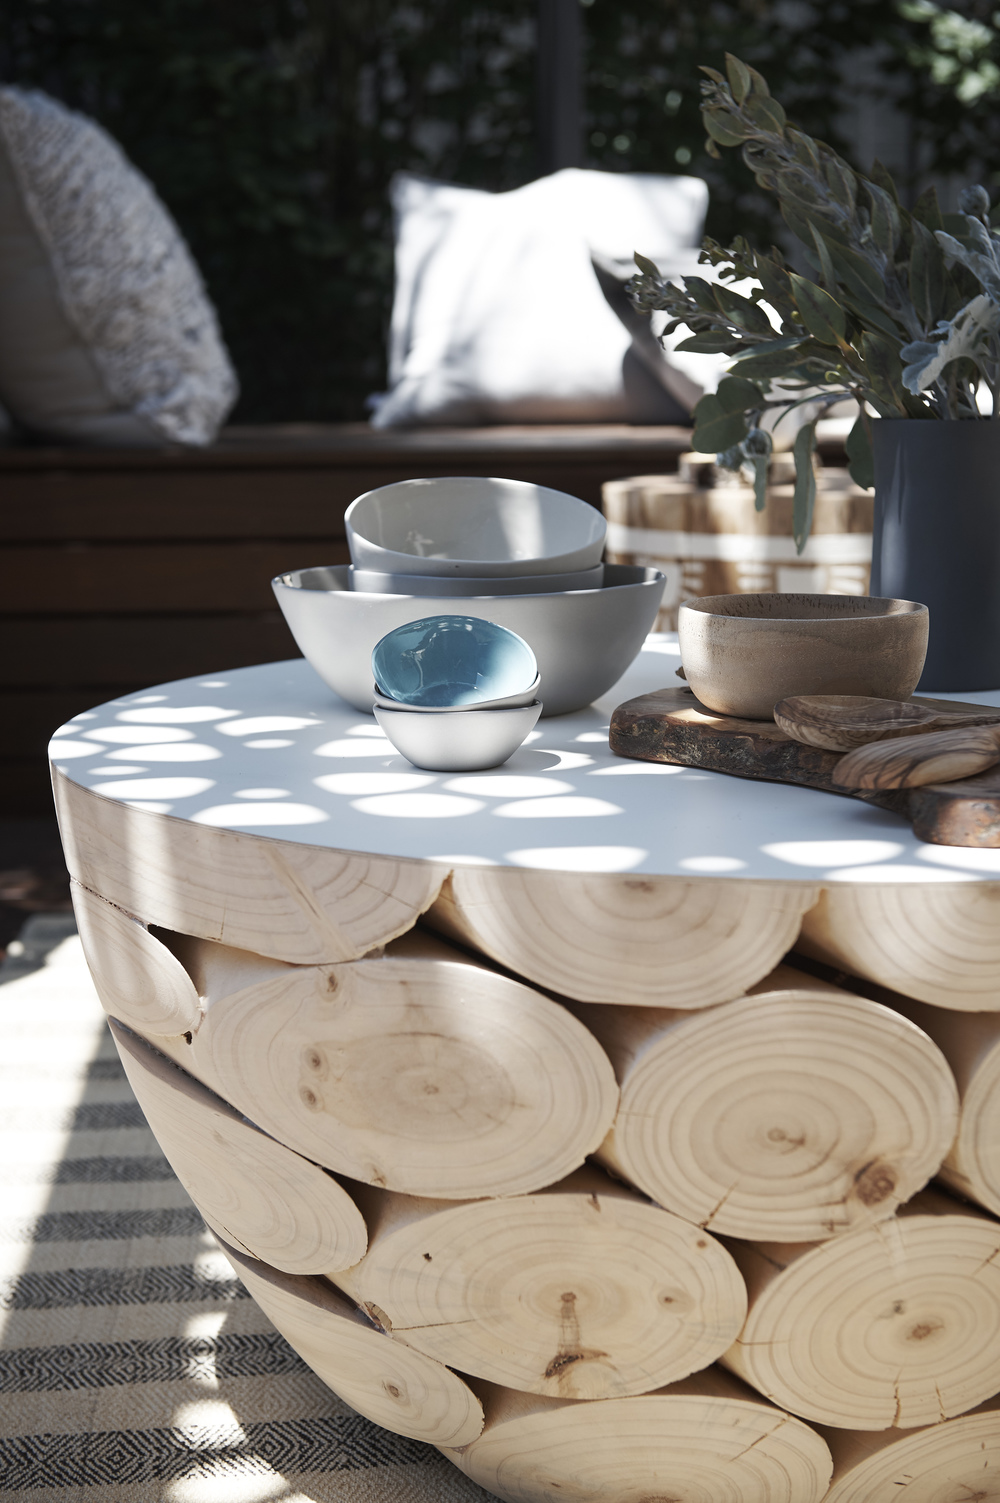 The  Mark Tuckey  coffee table was adorned with ceramics by  Marmouset Found  which complimented the raw and true trend perfectly.